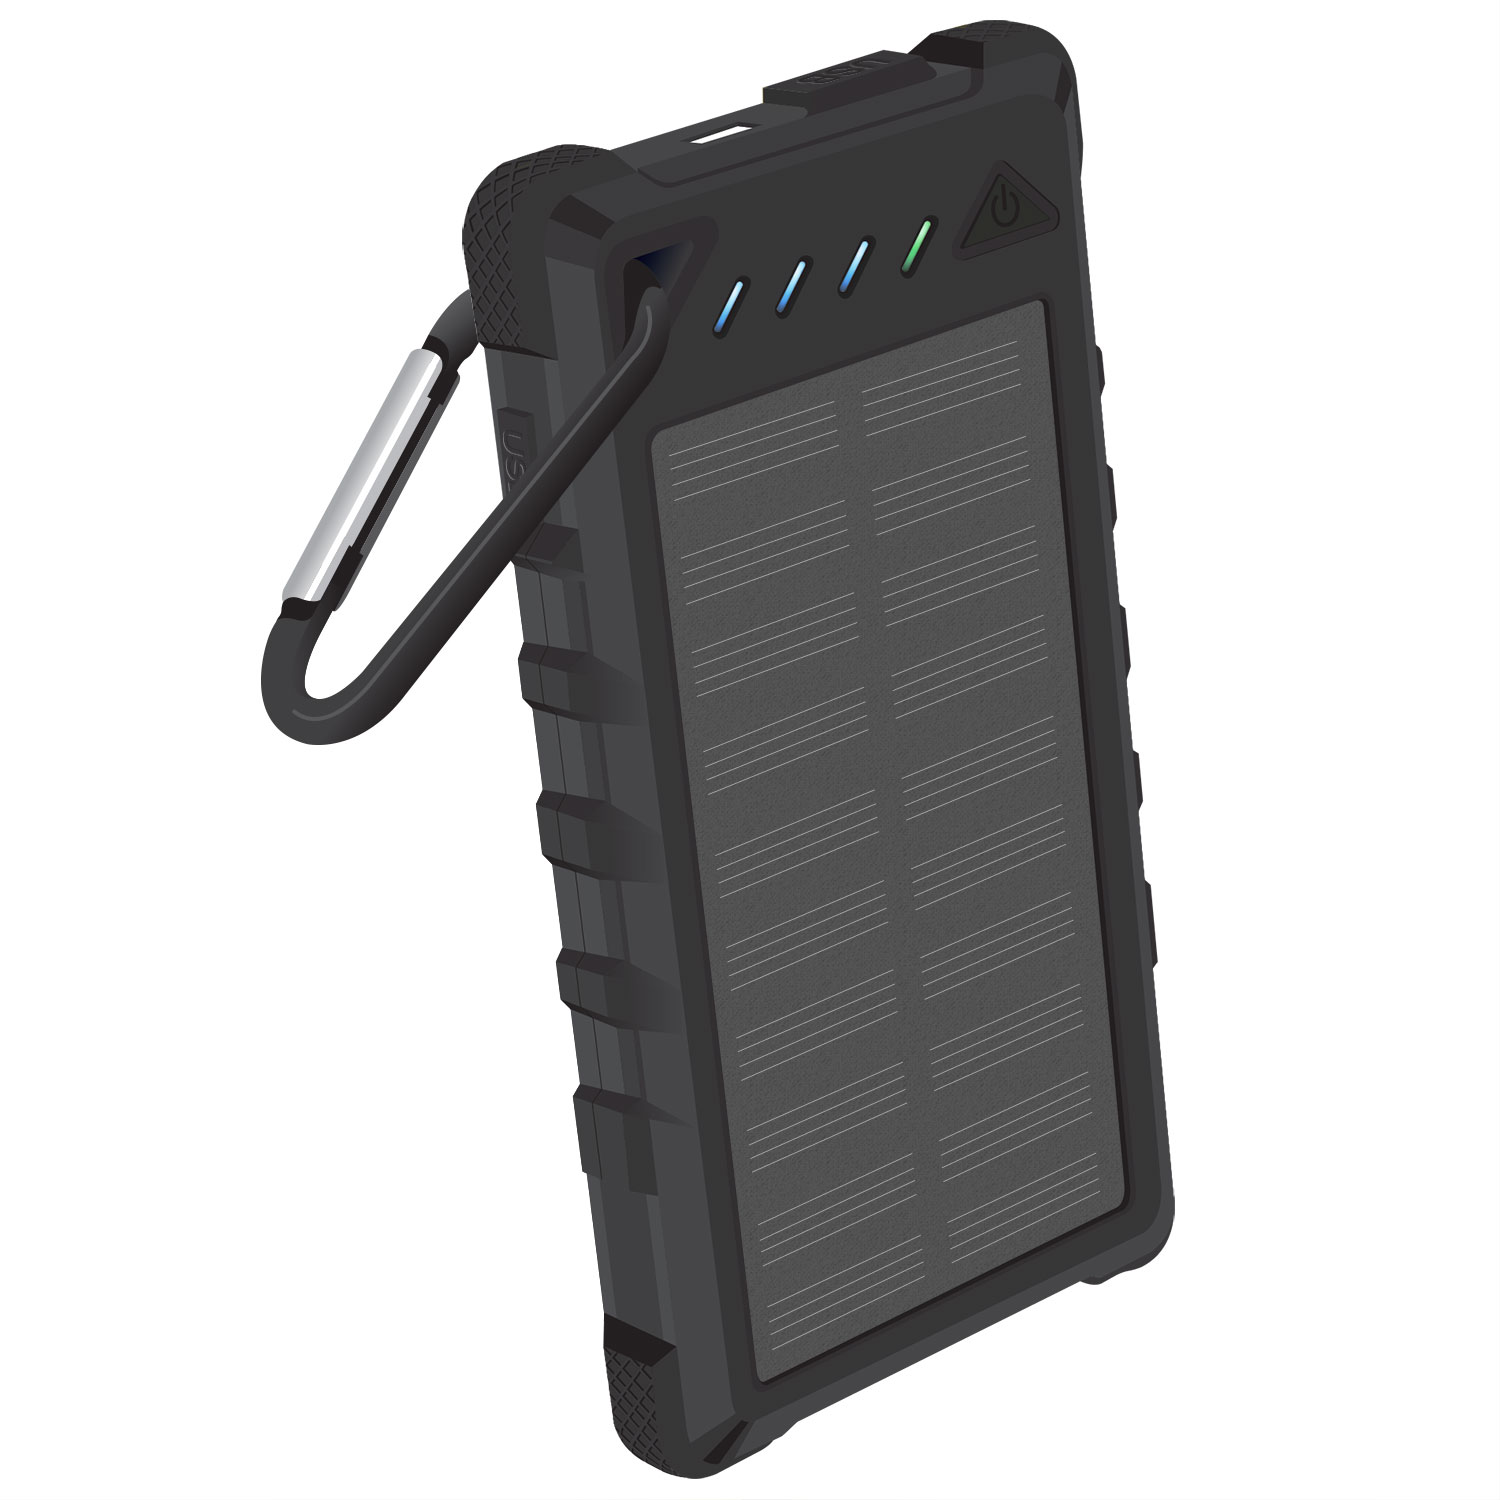 LG A340 Solar Powered Portable PowerBank Black